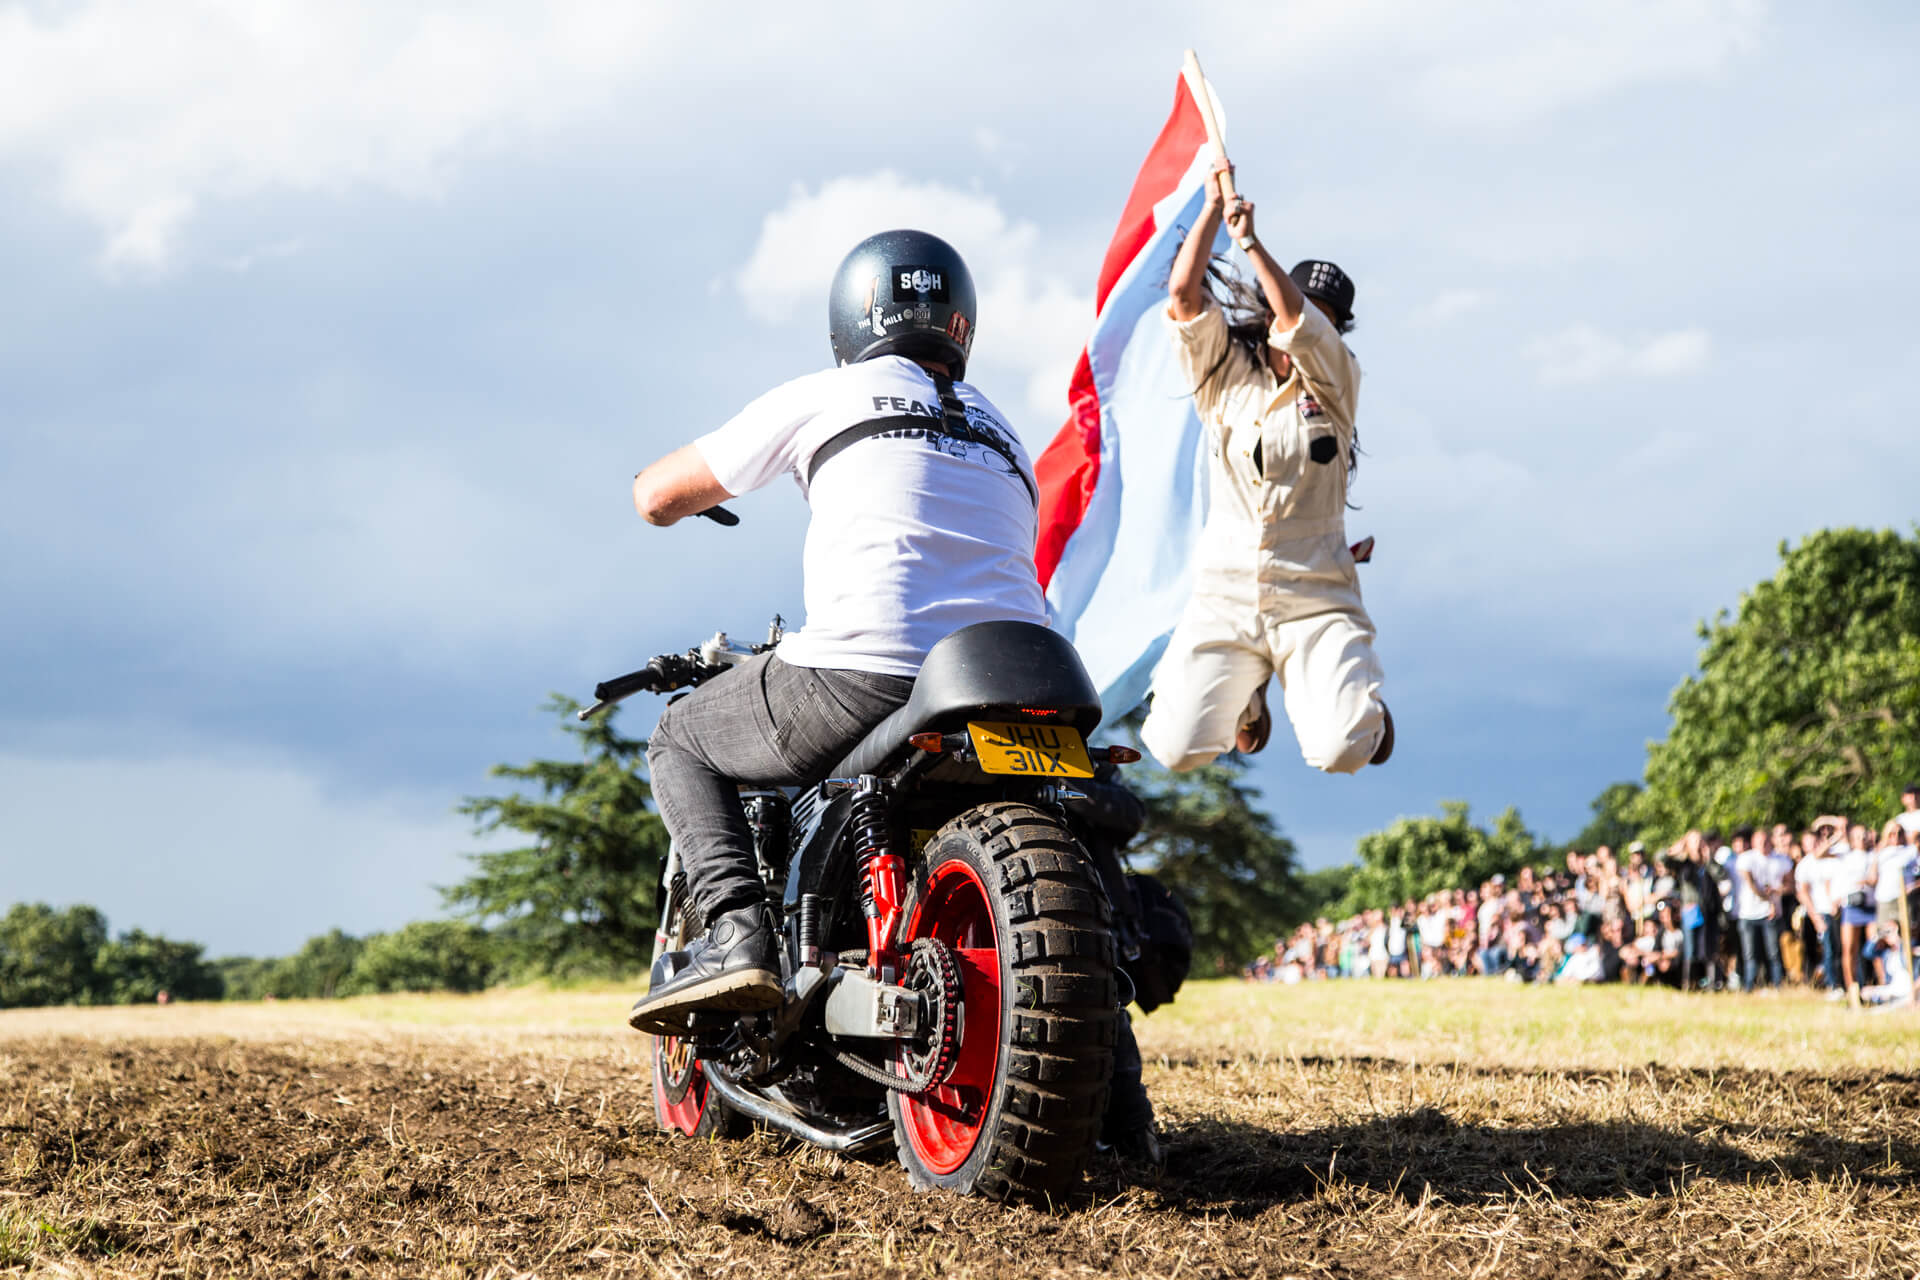 Malle Mile, Event, Motorcycle, Richard, Summer, WeAreShuffle, Agency, Photography, Film, Production, Malle London, Triumph, Flag, Biker, Field, Race, Helmet, Dirt, Girl